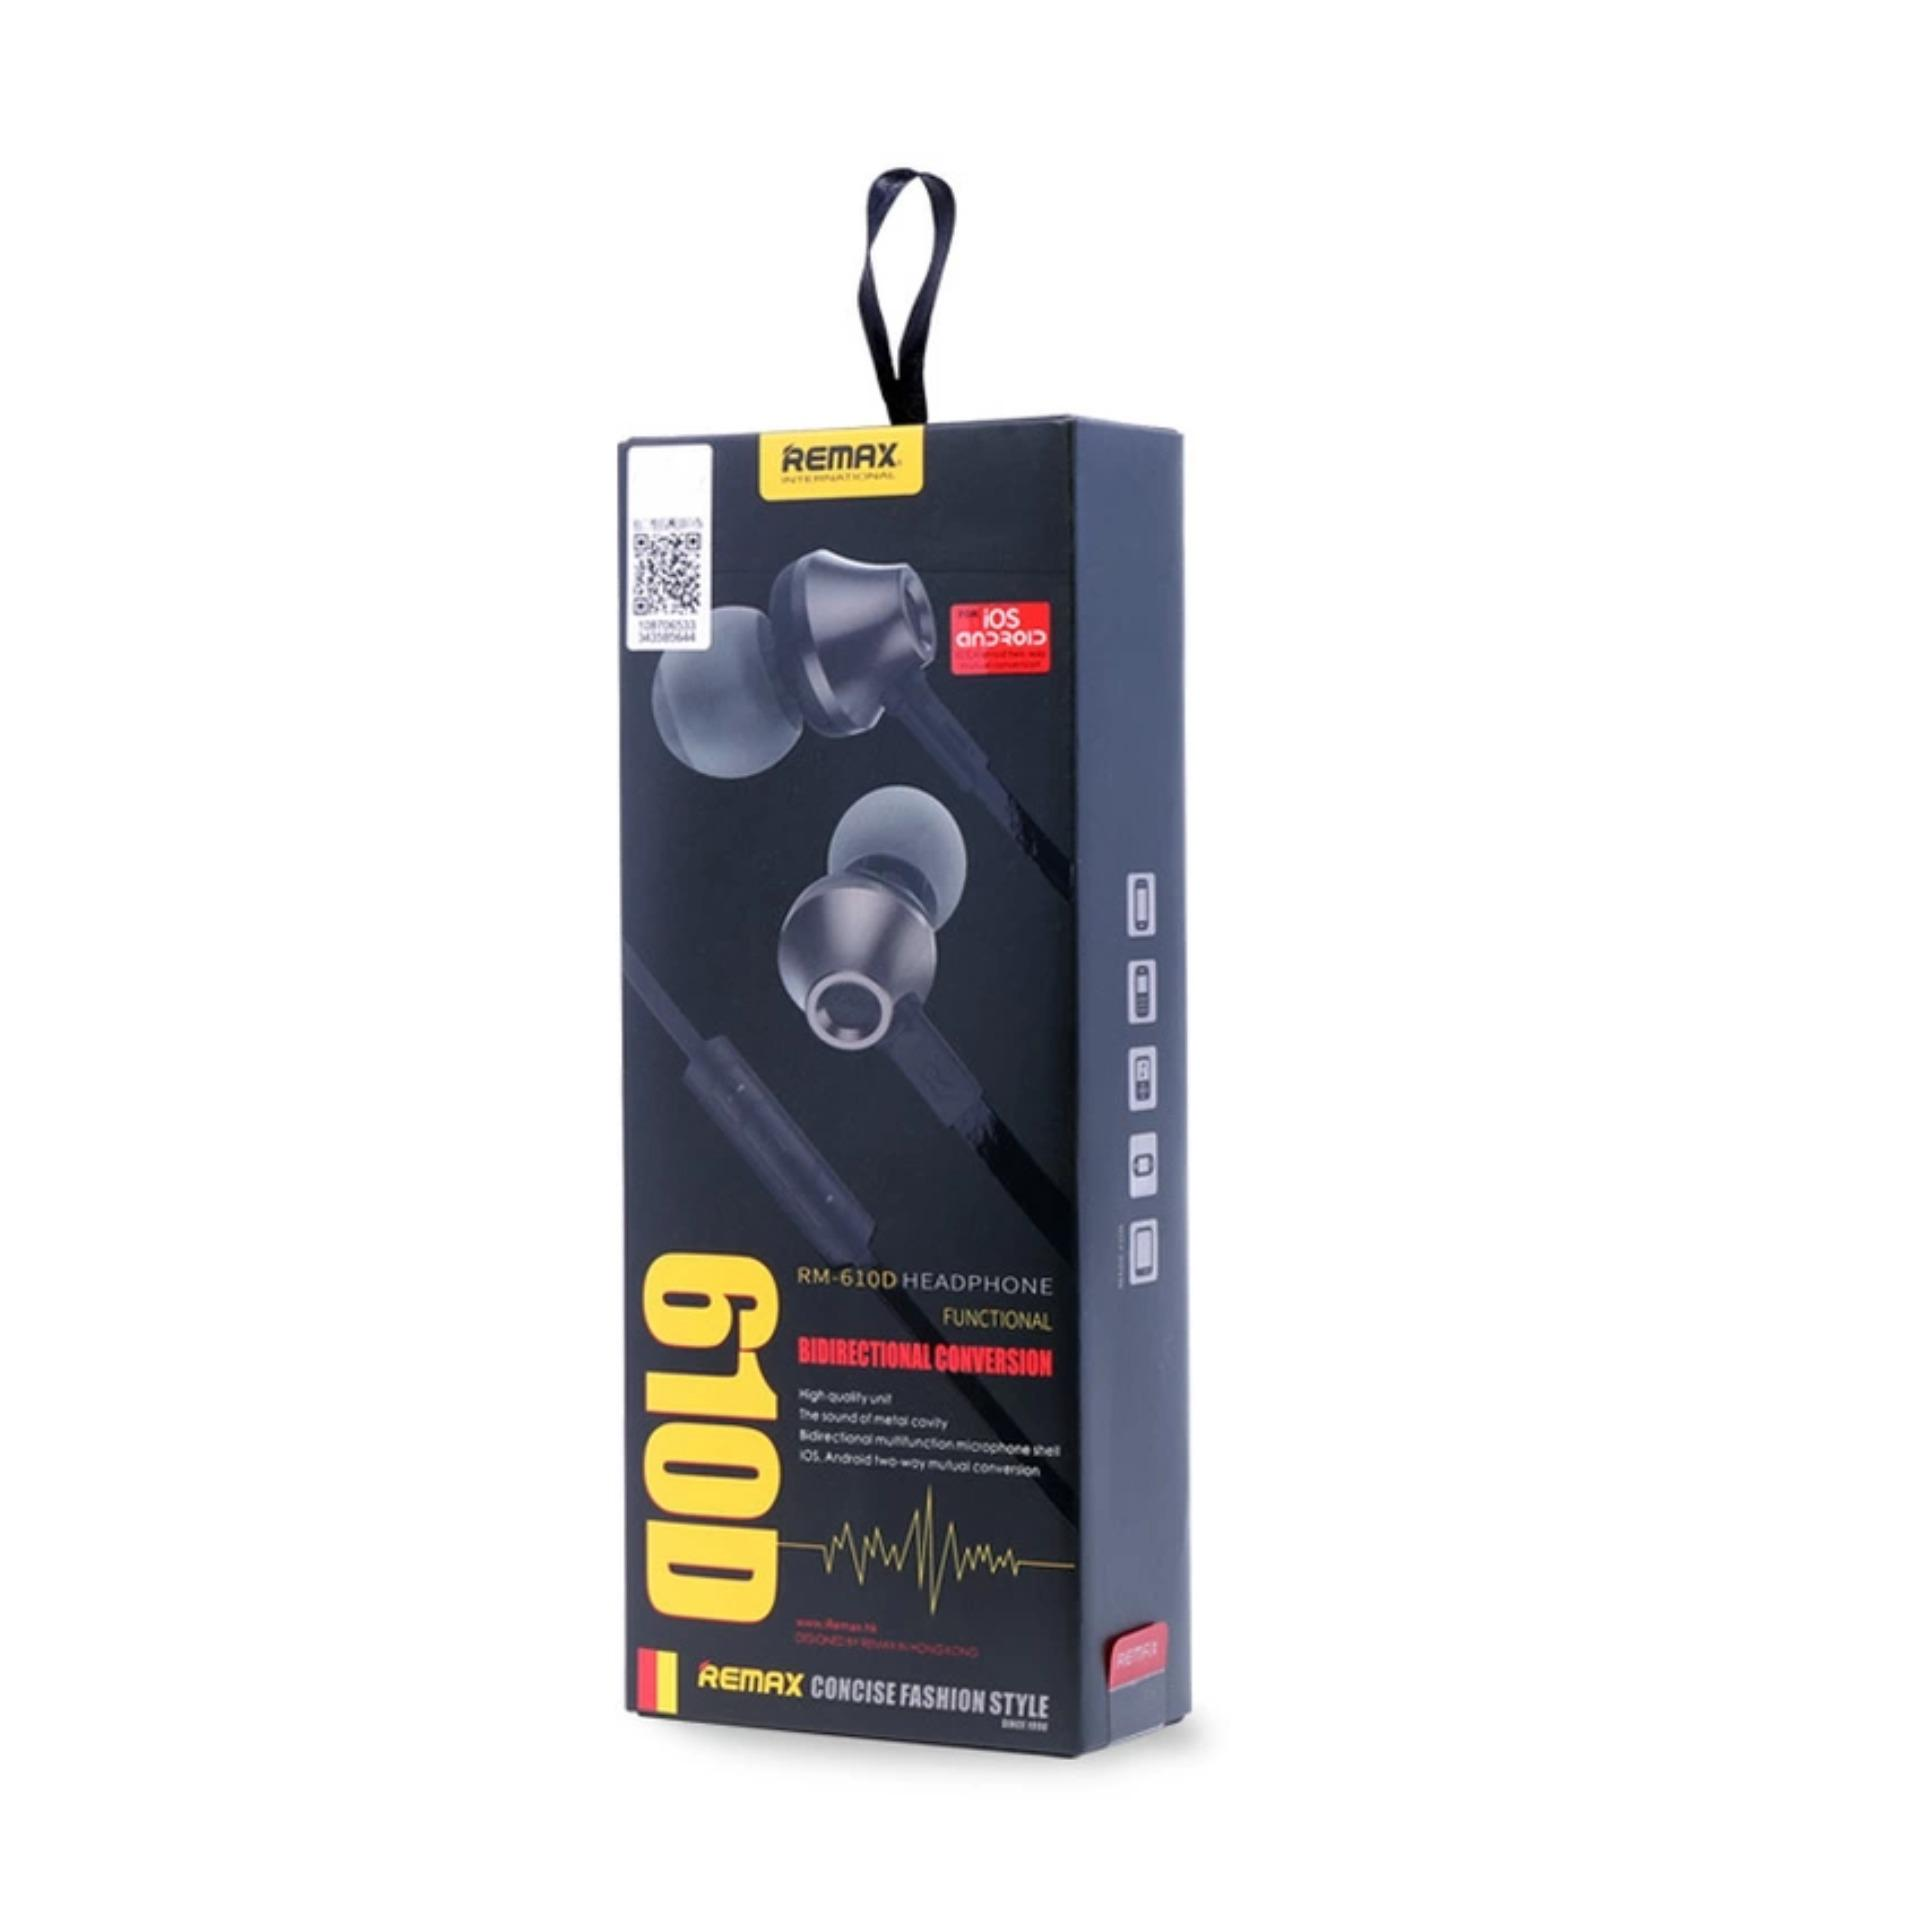 ... Remax RM 610D Android / iOS Headphone Stereo Bass Handsfree - Hitam ...